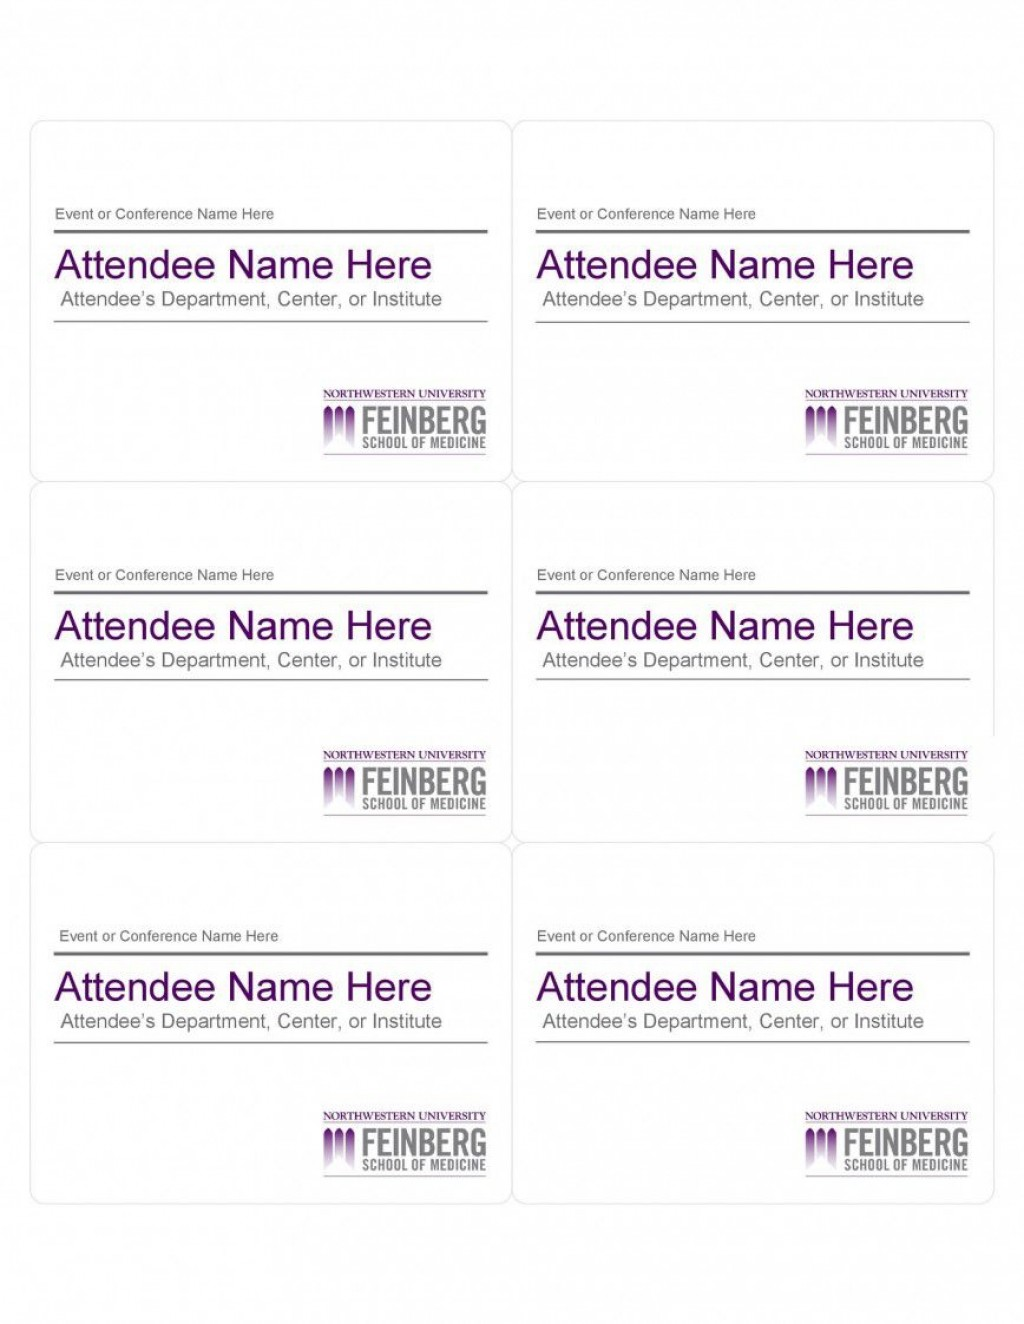 001 Astounding Name Badge Template Word Photo  Free Download 2010 Avery 5392Large